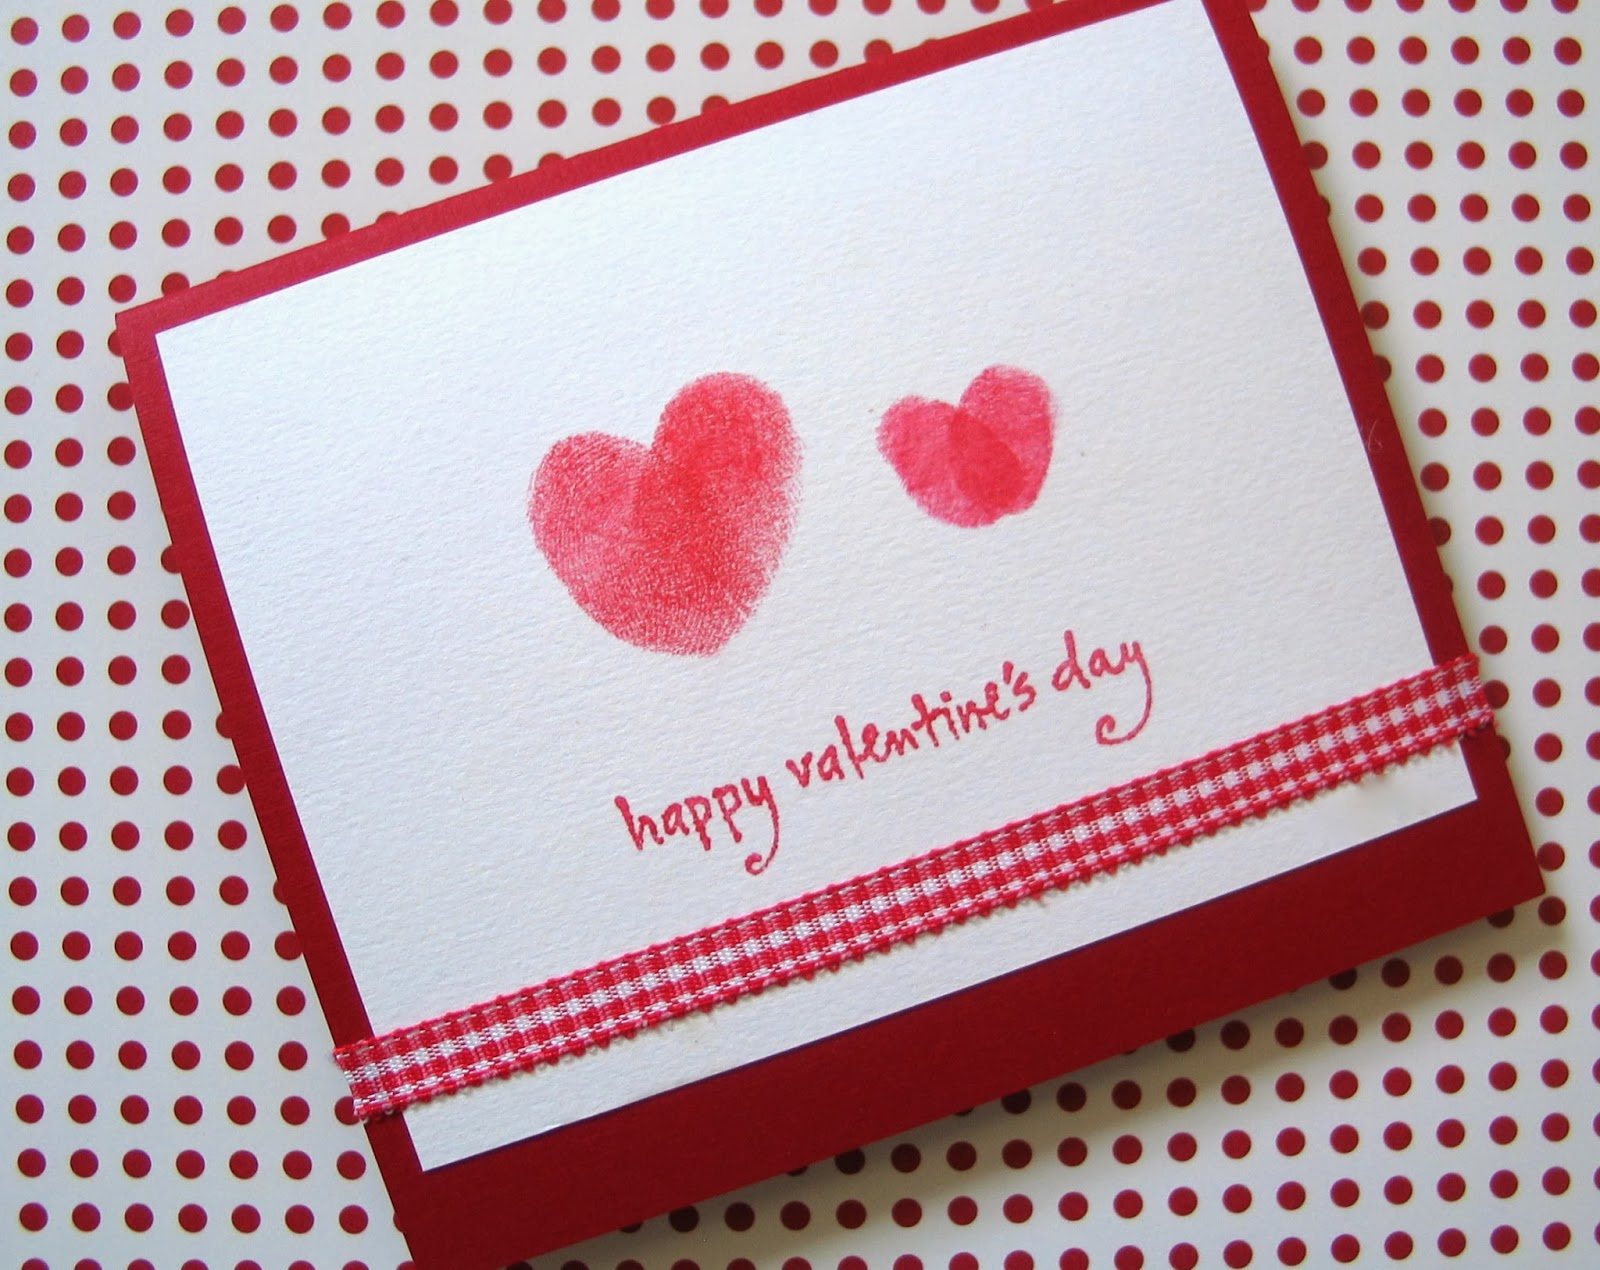 Happy Valentines Day Valentine Card – Most Beautiful Valentine Cards